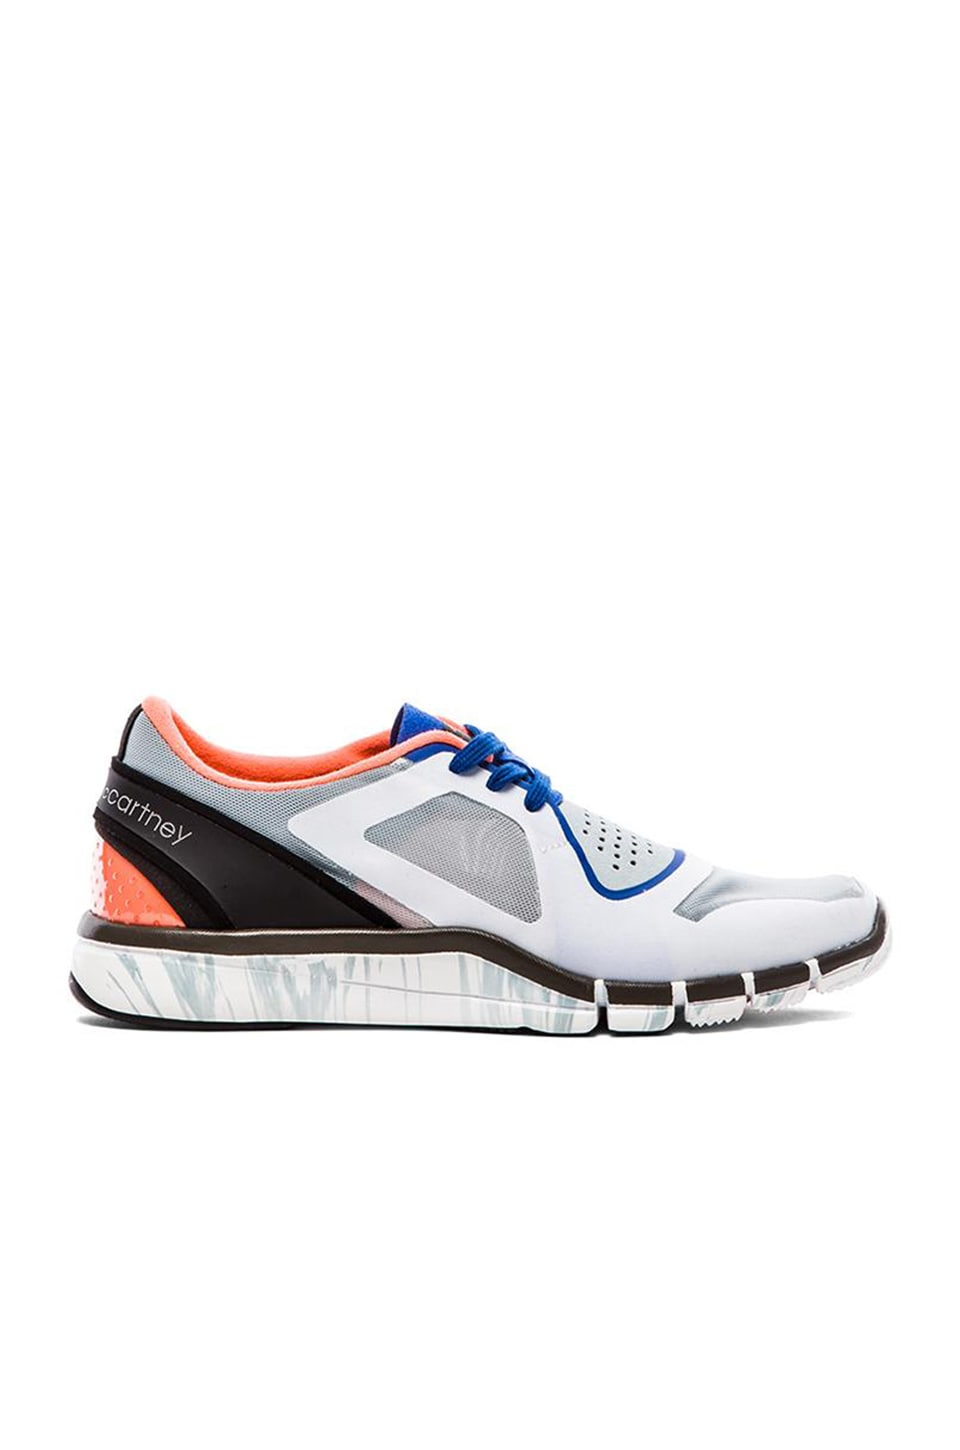 adidas by Stella McCartney Adipure Sneaker in Eggshell & Flight Blue